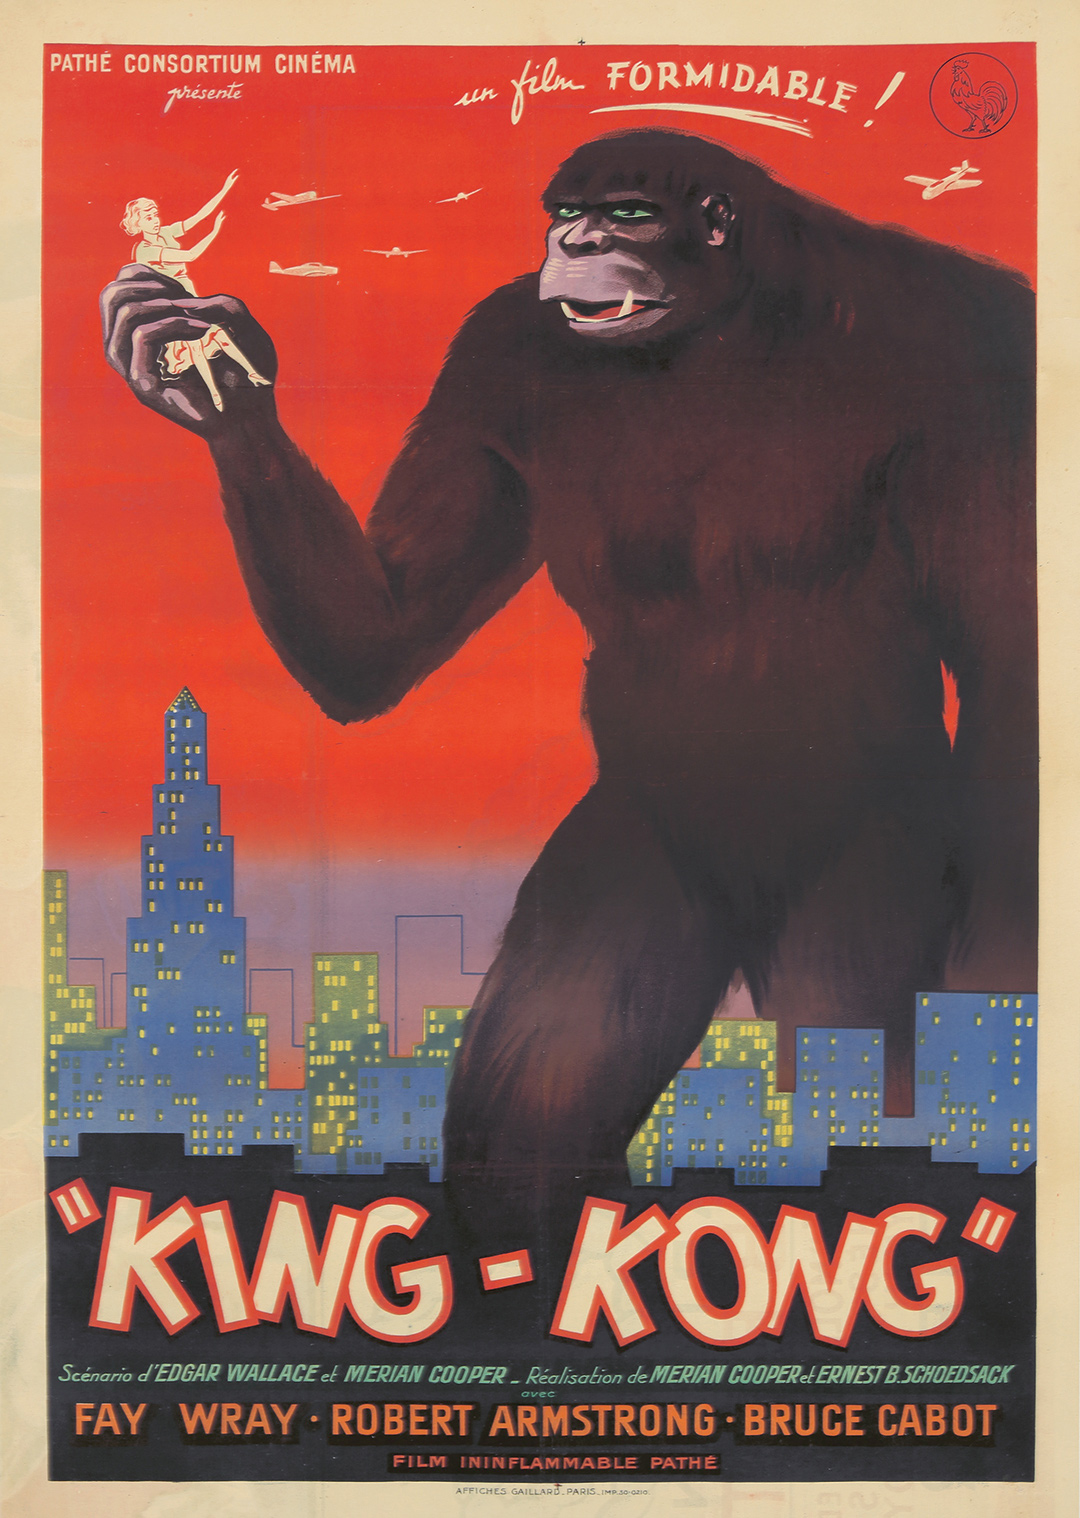 139. Bloch's 1942 King-Kong. ($18,000)